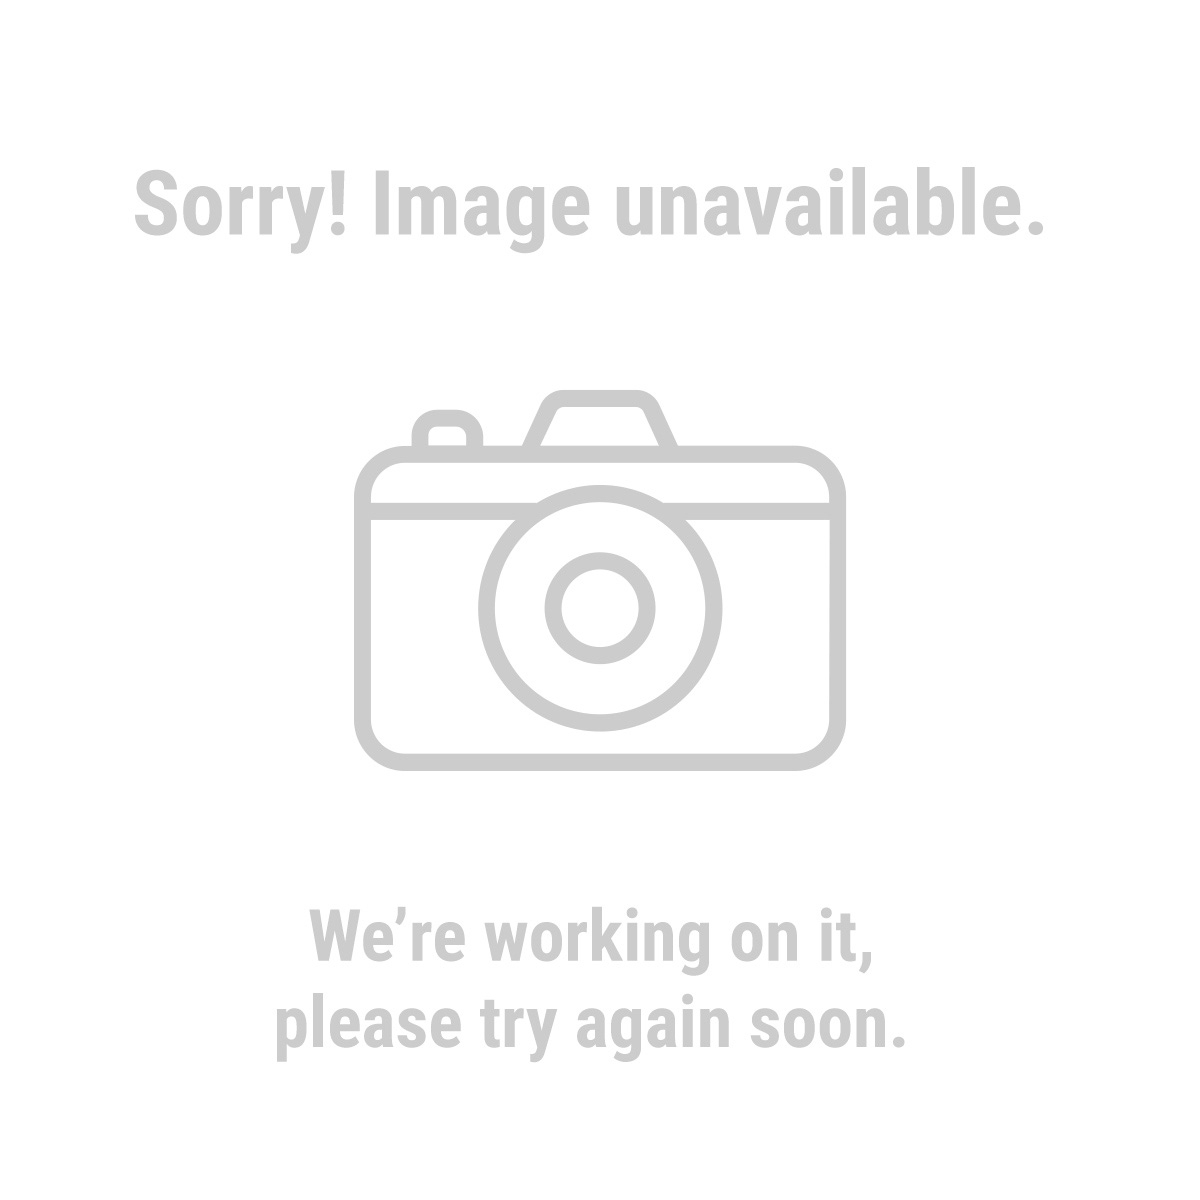 Haul-Master 61521 4.80/4.00-8 Four ply rated Tire with 4 Lug Rim